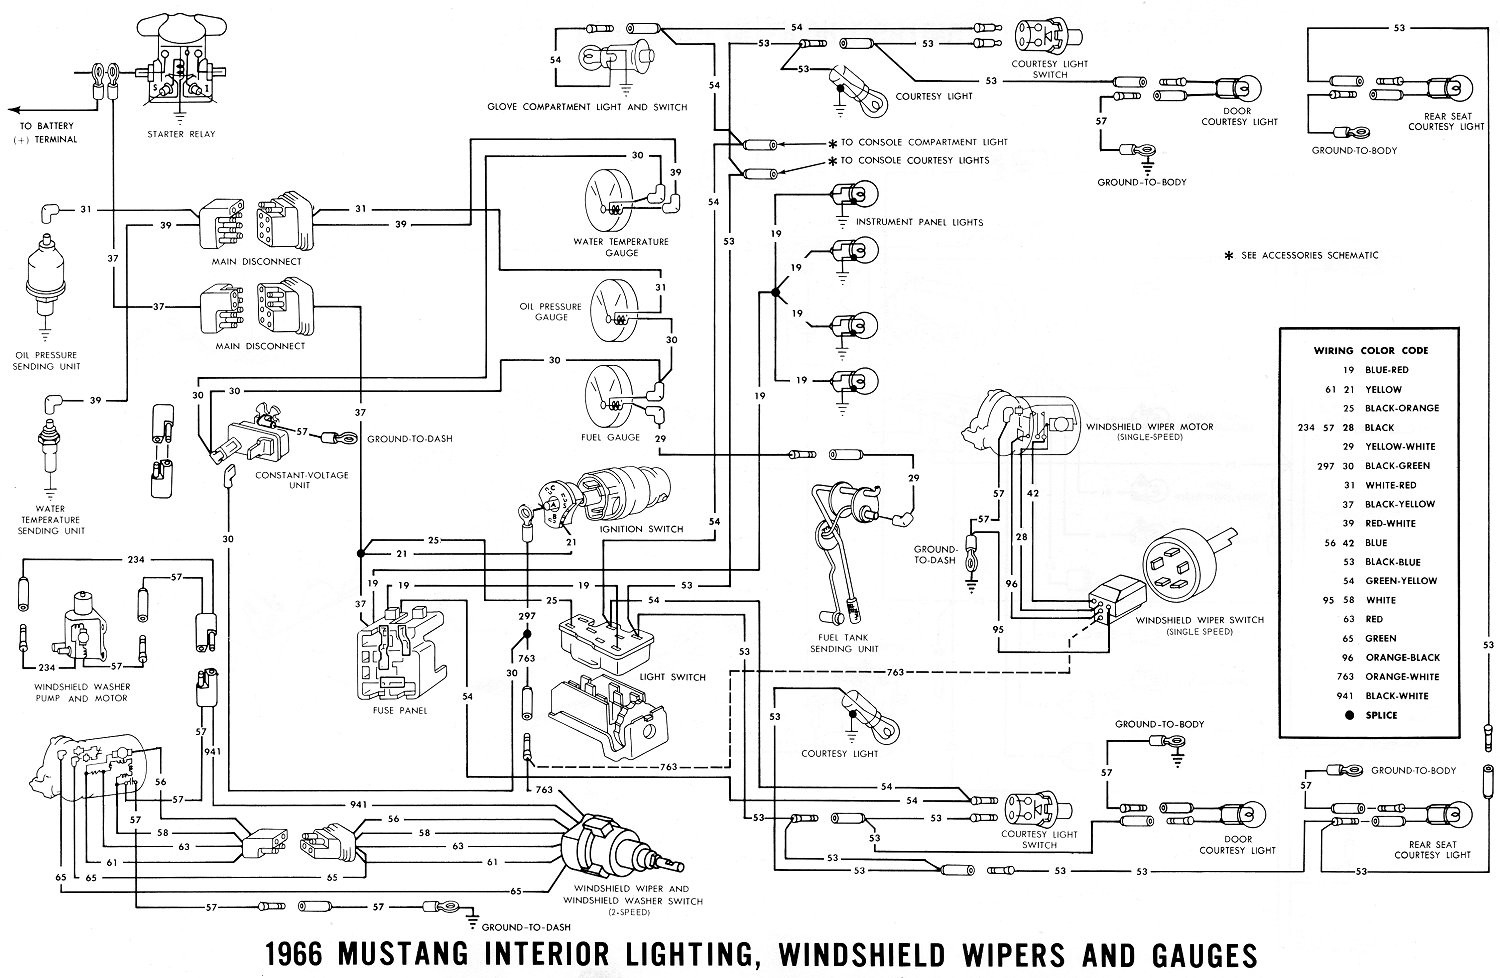 1965 Ford Mustang Wiring Diagram Gallery Sample Collection 1966 Interior Lighting Windshield Noticeable